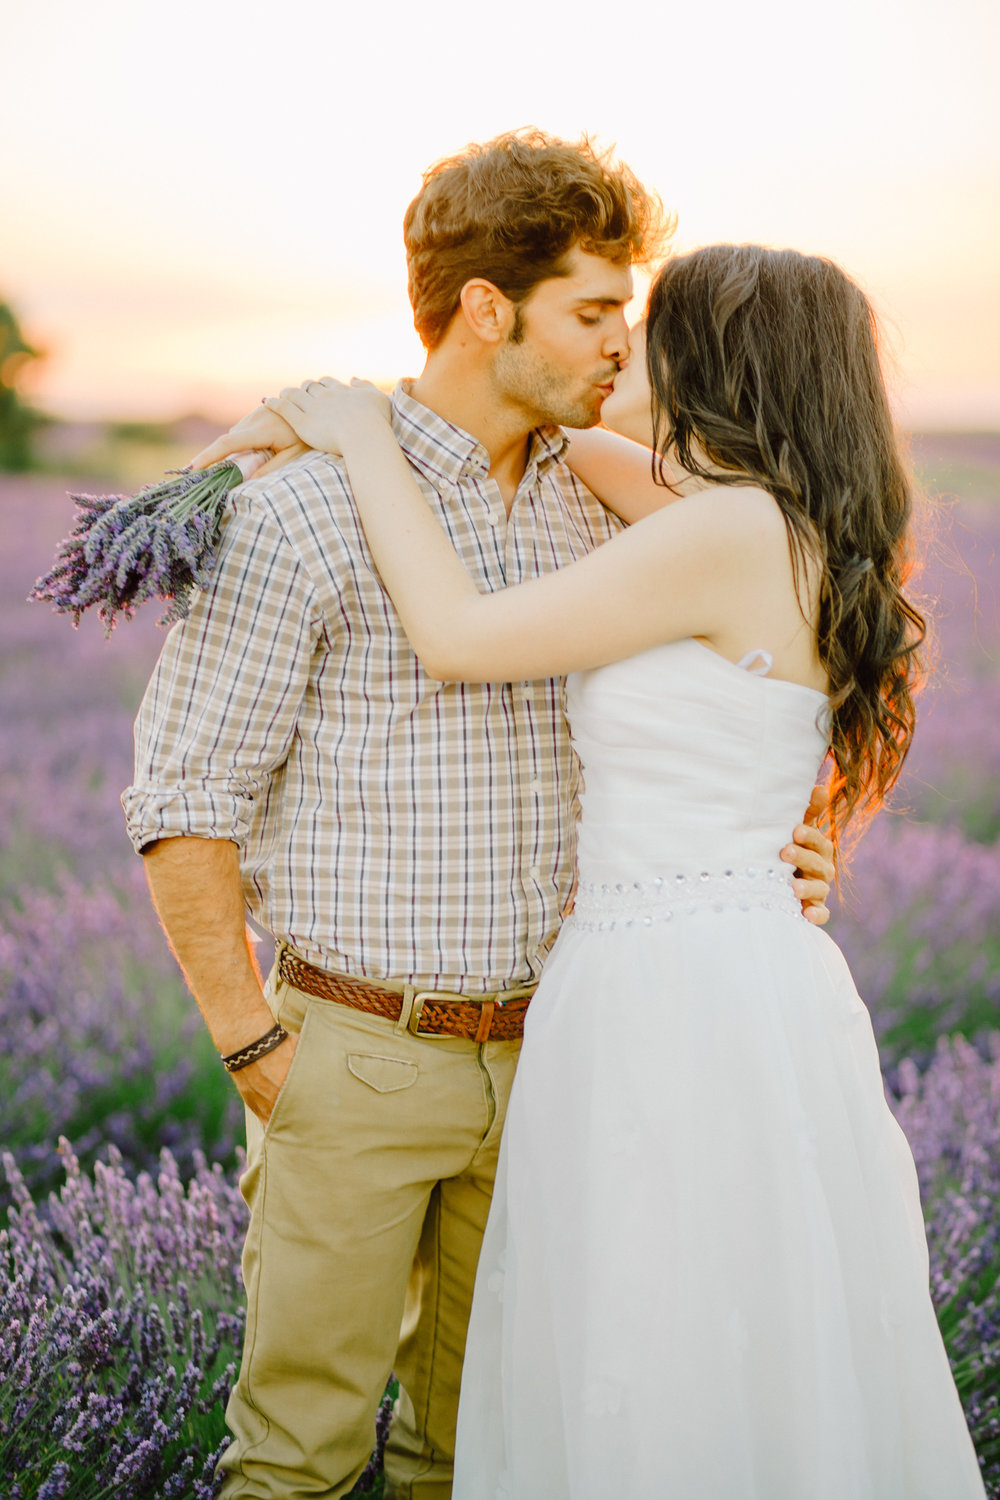 Lavender Field Engagement Photos - Guadalajara Spain Lavender Field - Alla Yachkulo Photography